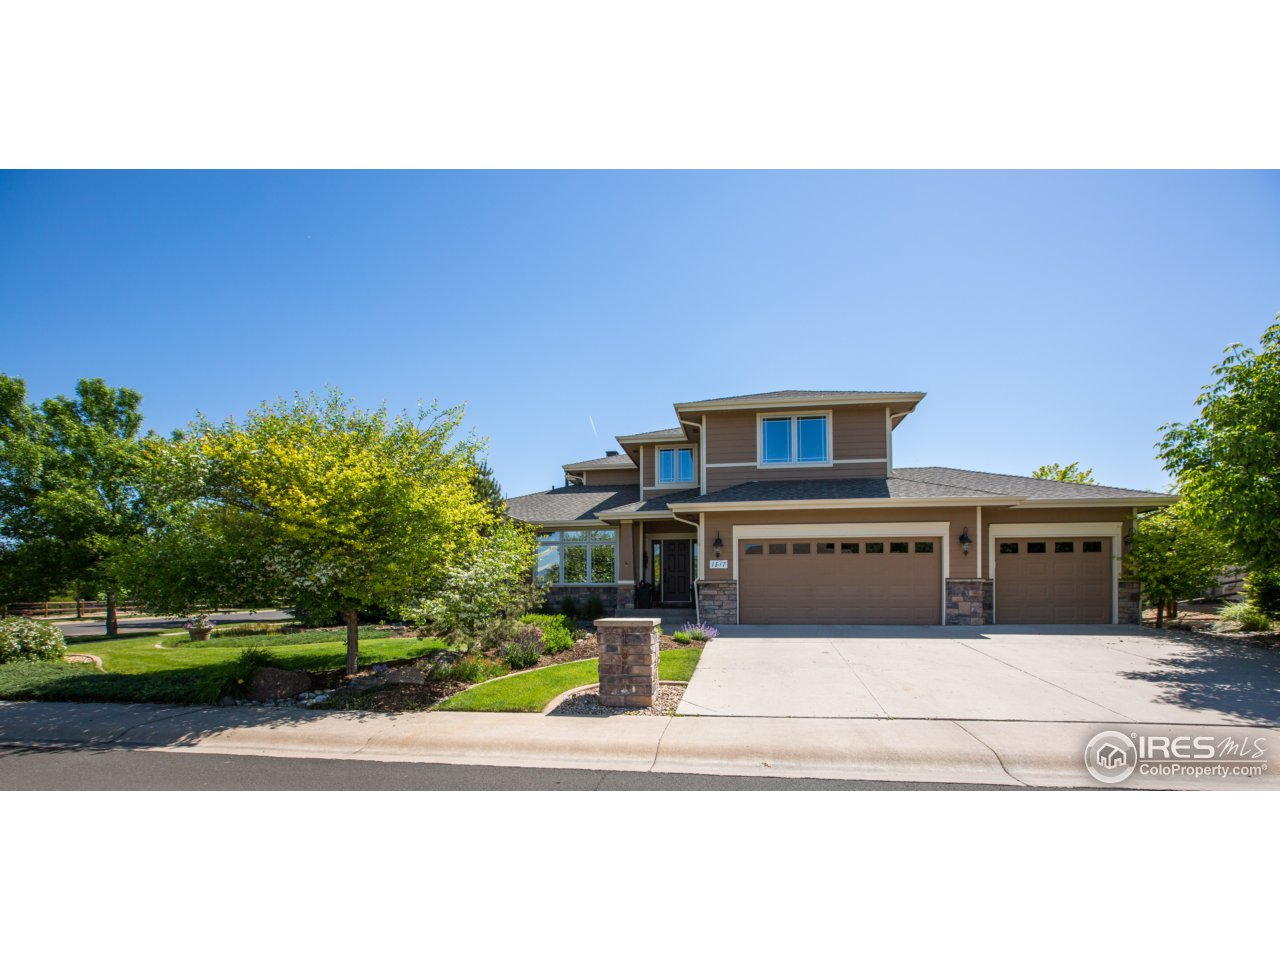 1517 Folsum Dr, Windsor, CO 80550